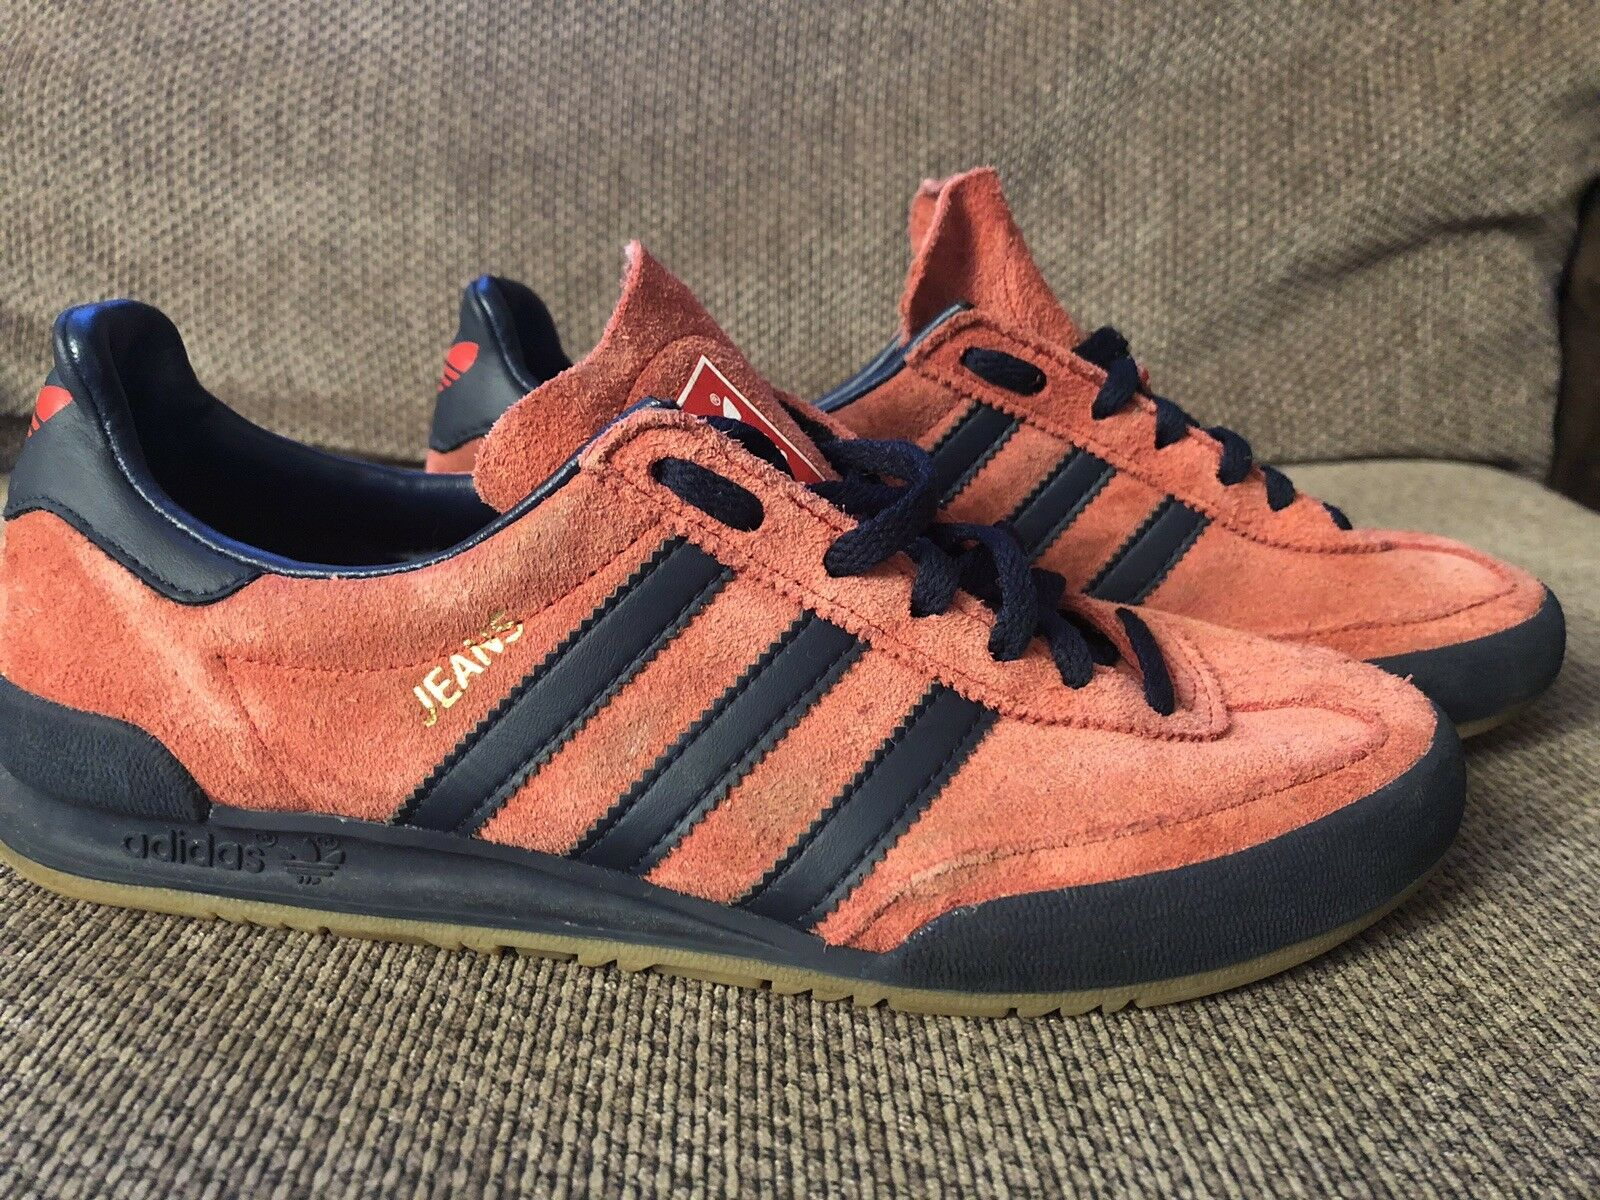 Adidas Jeans Mk2 Trainers 5 Uk Burnt orange navy In Immaculate Condition